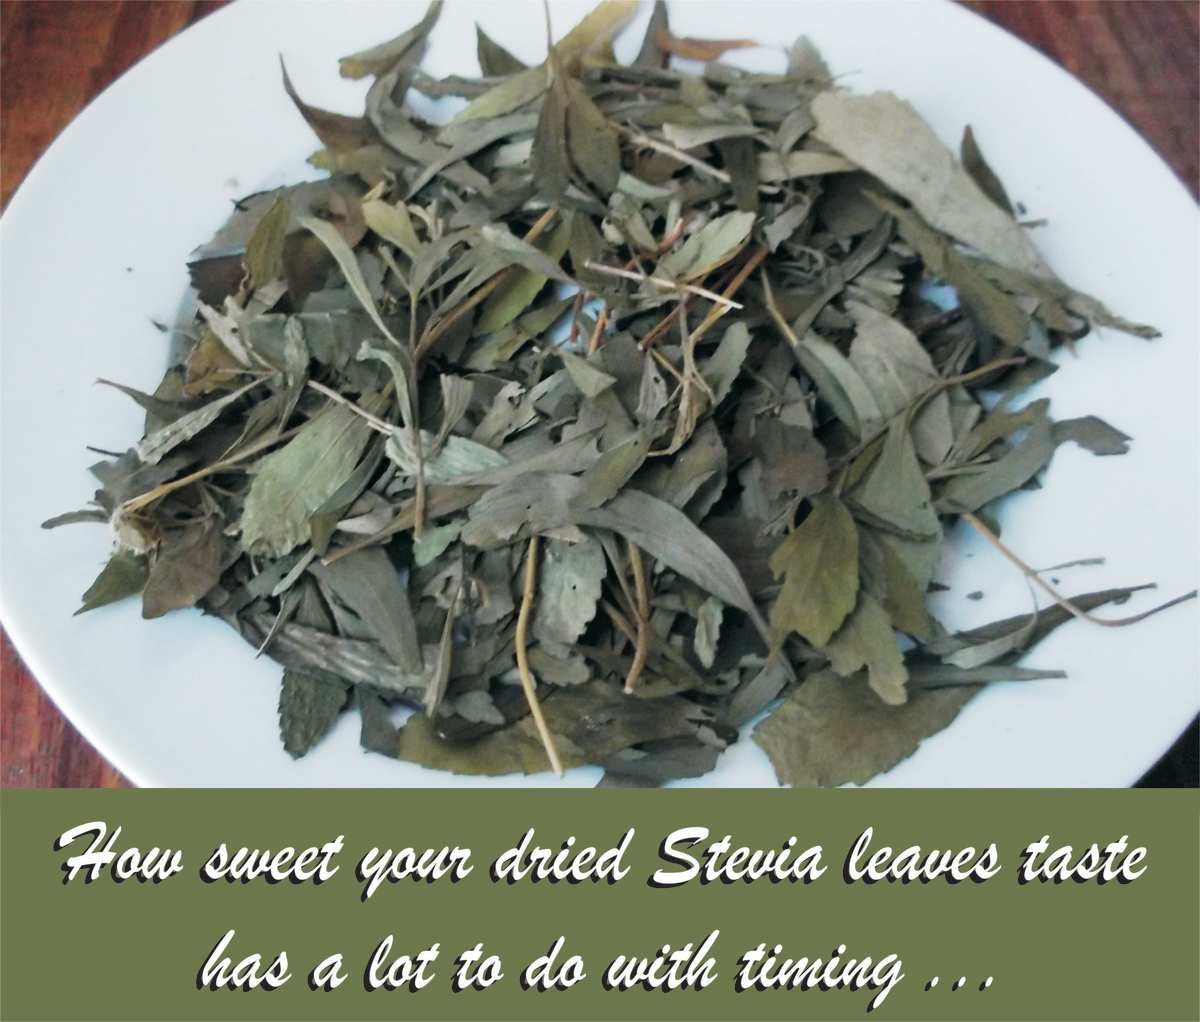 To make stevia powder, simply crush your dried stevia leaves.